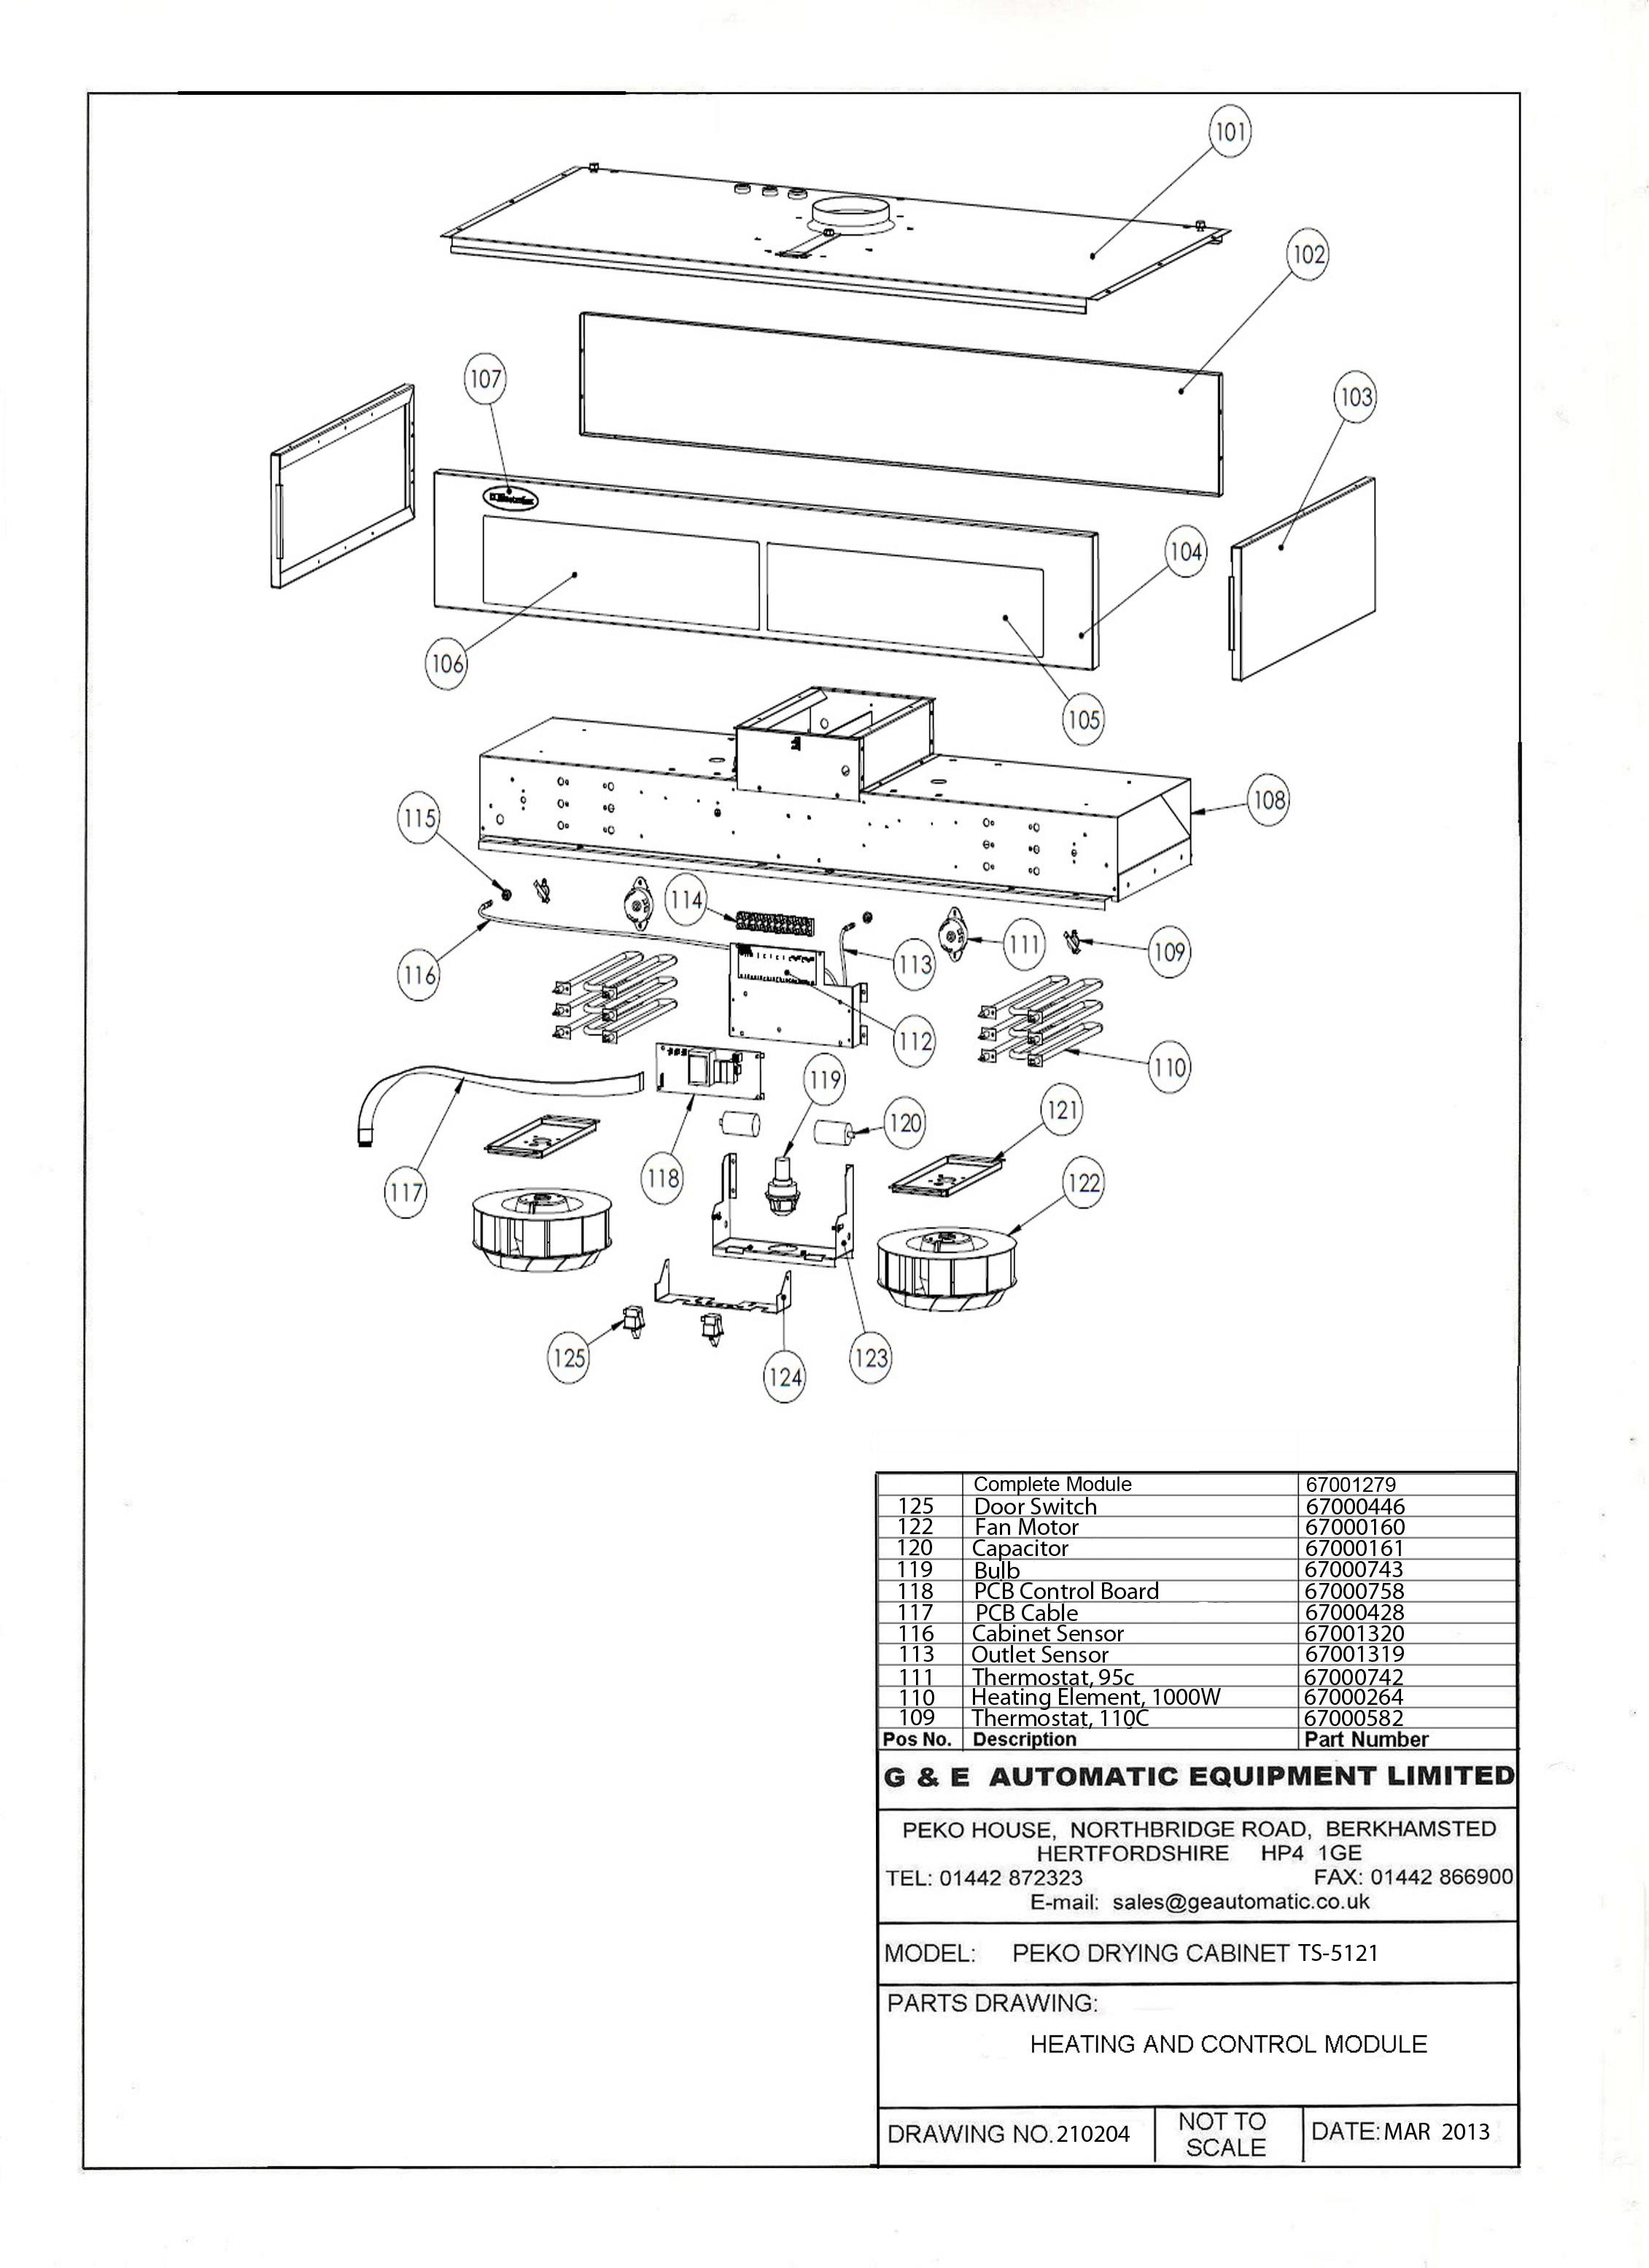 spare parts peko drying cabinets 220 Dryer Wiring Diagram ts 5121 heating and control module